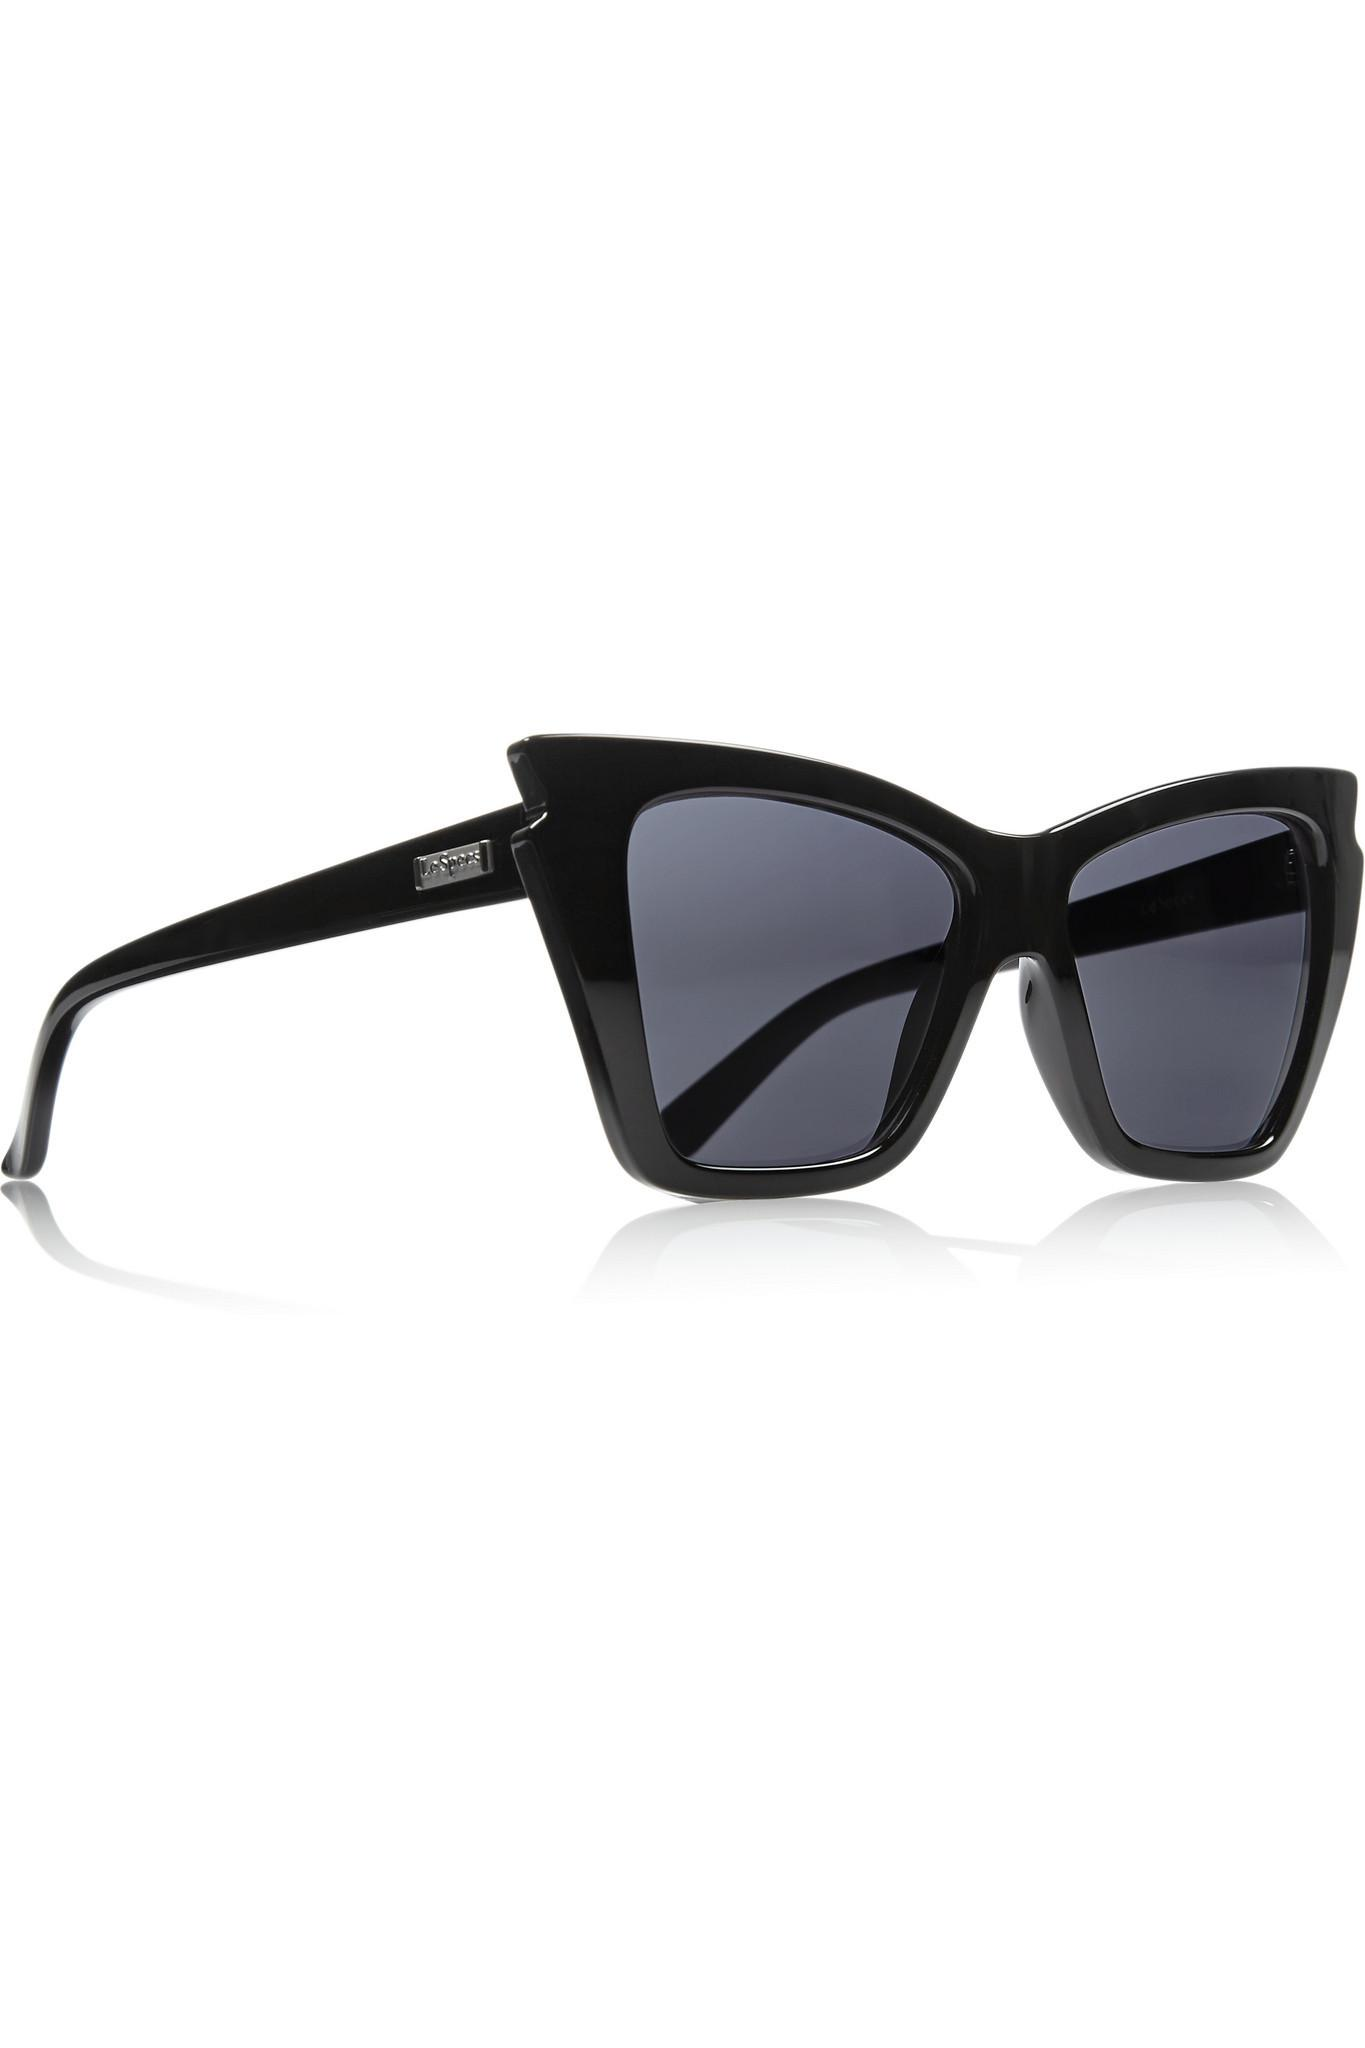 2bb4465cfa Lyst - Le Specs Rapture Cat-eye Acetate Sunglasses in Black - Save 8%